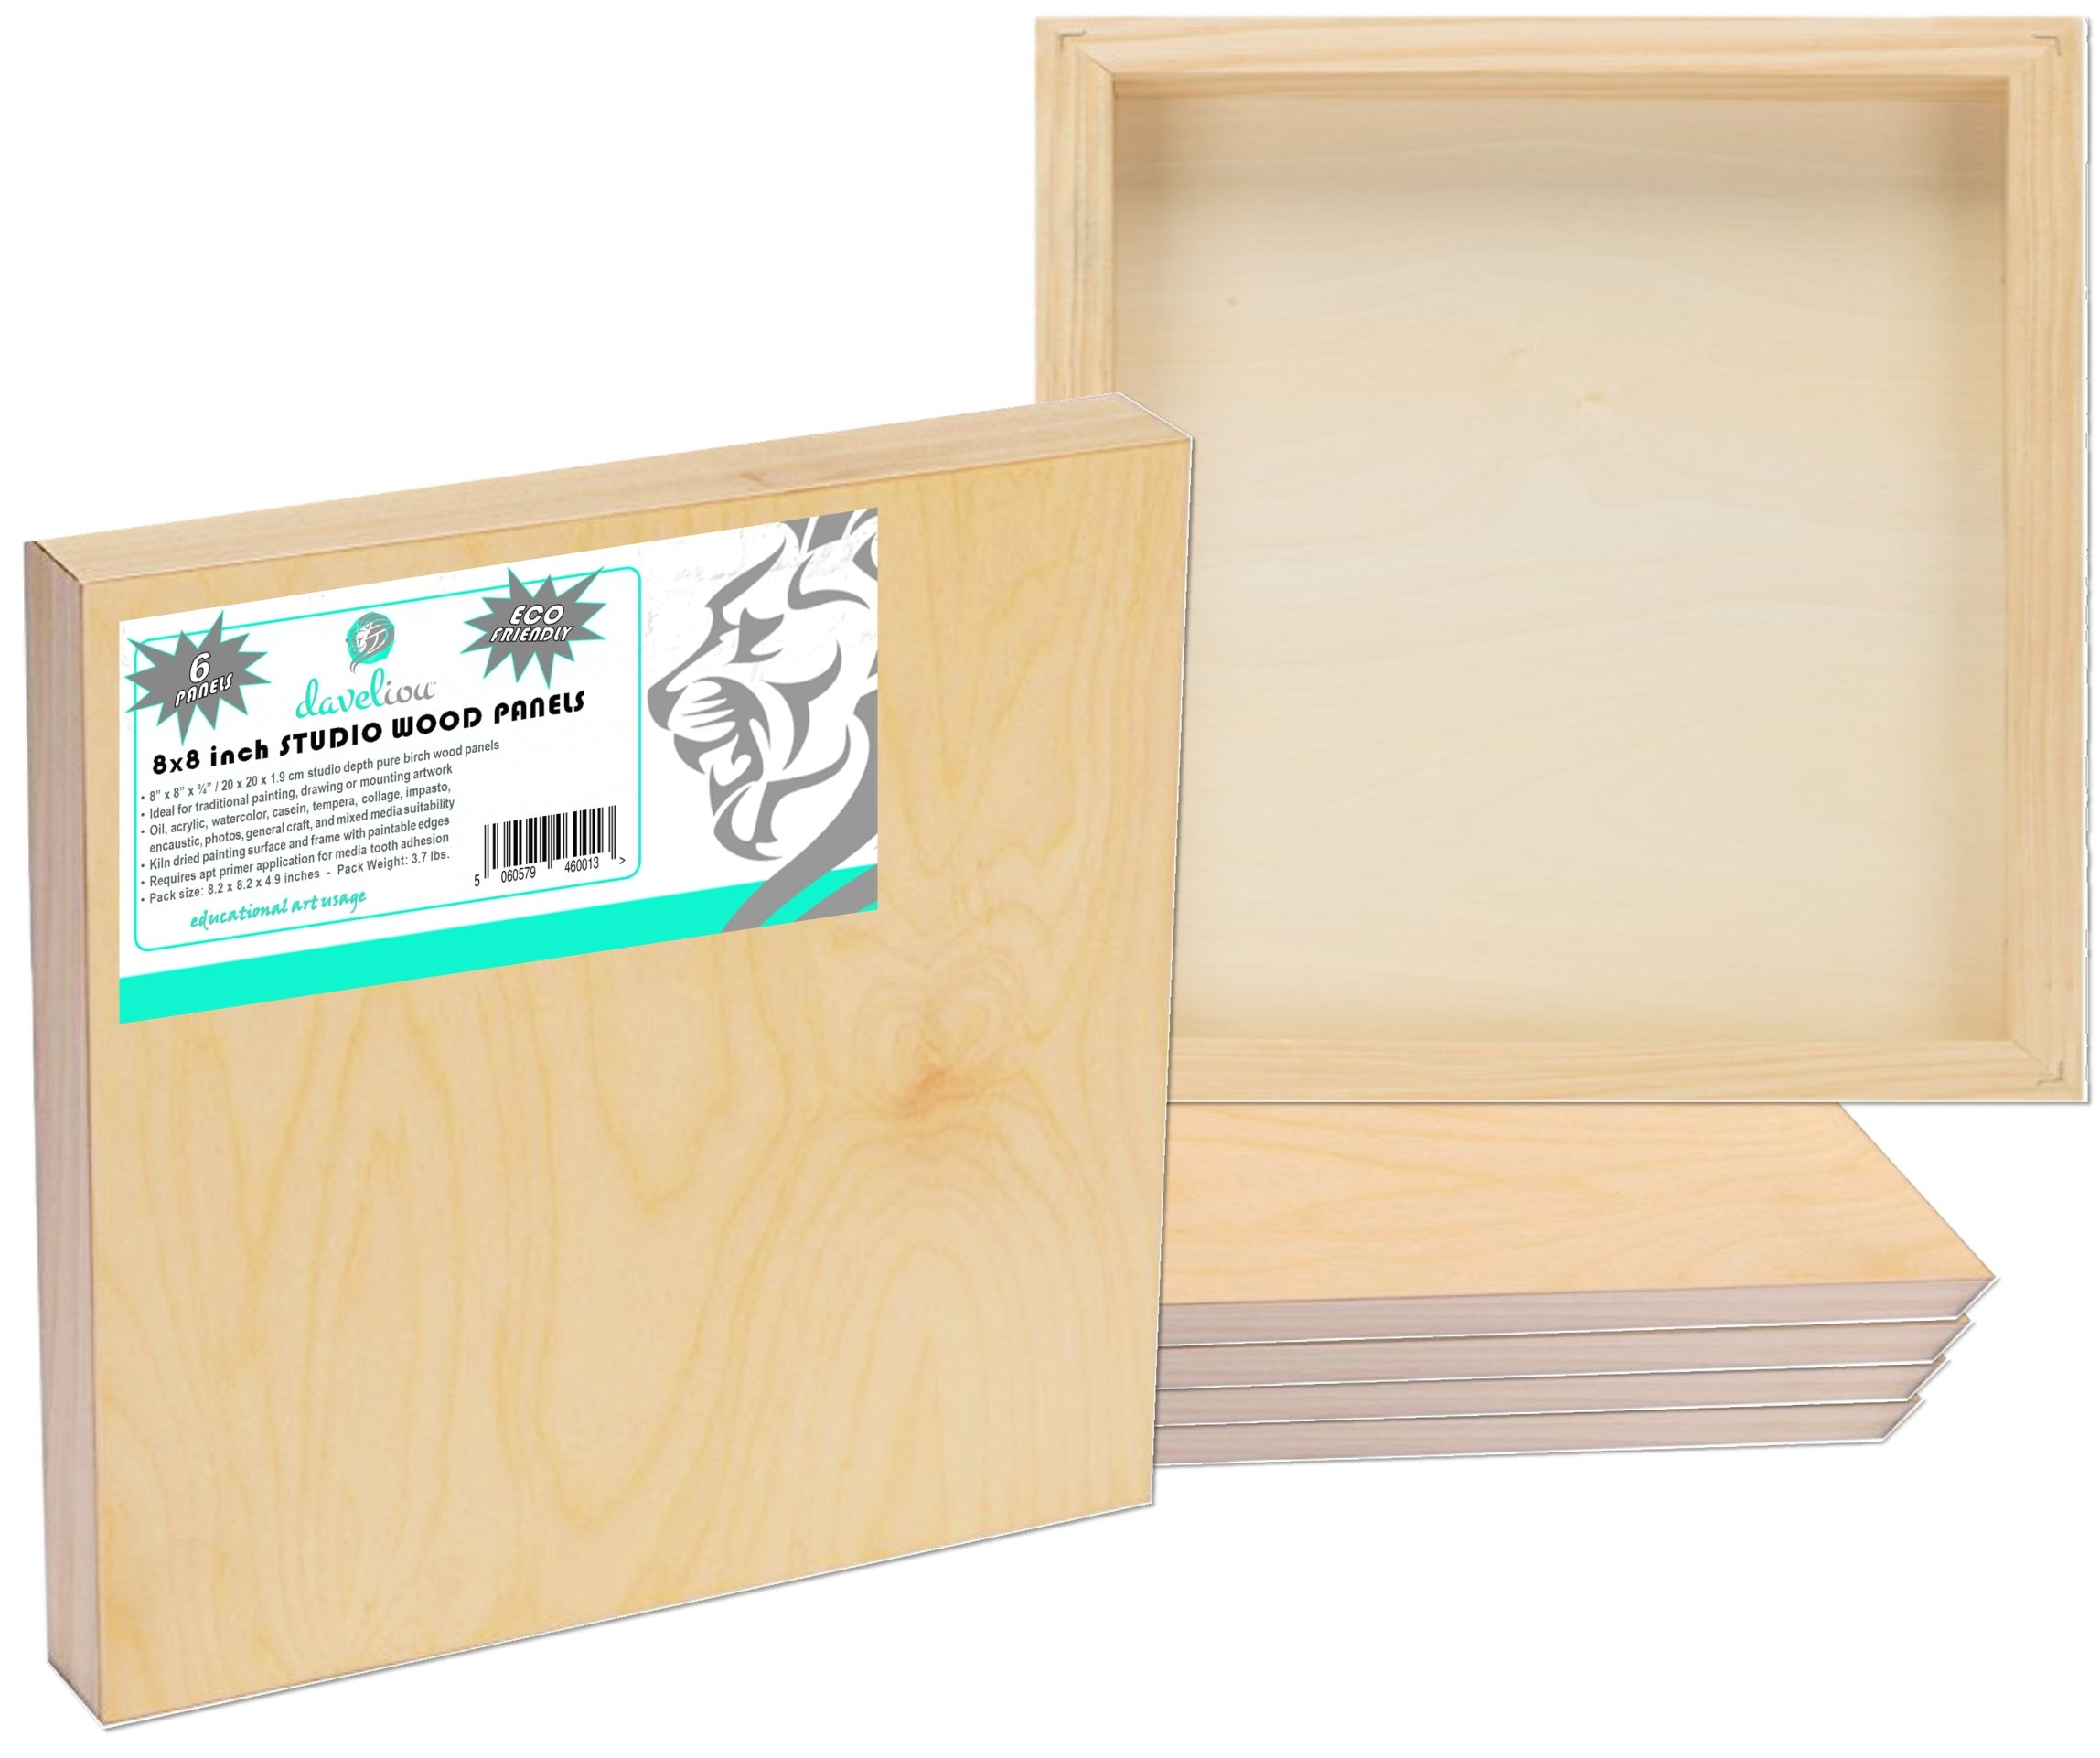 Daveliou™ Wood Panel Sets are eco-friendly art supplies providing the right artist tools, craft supplies and wood boards for painting.